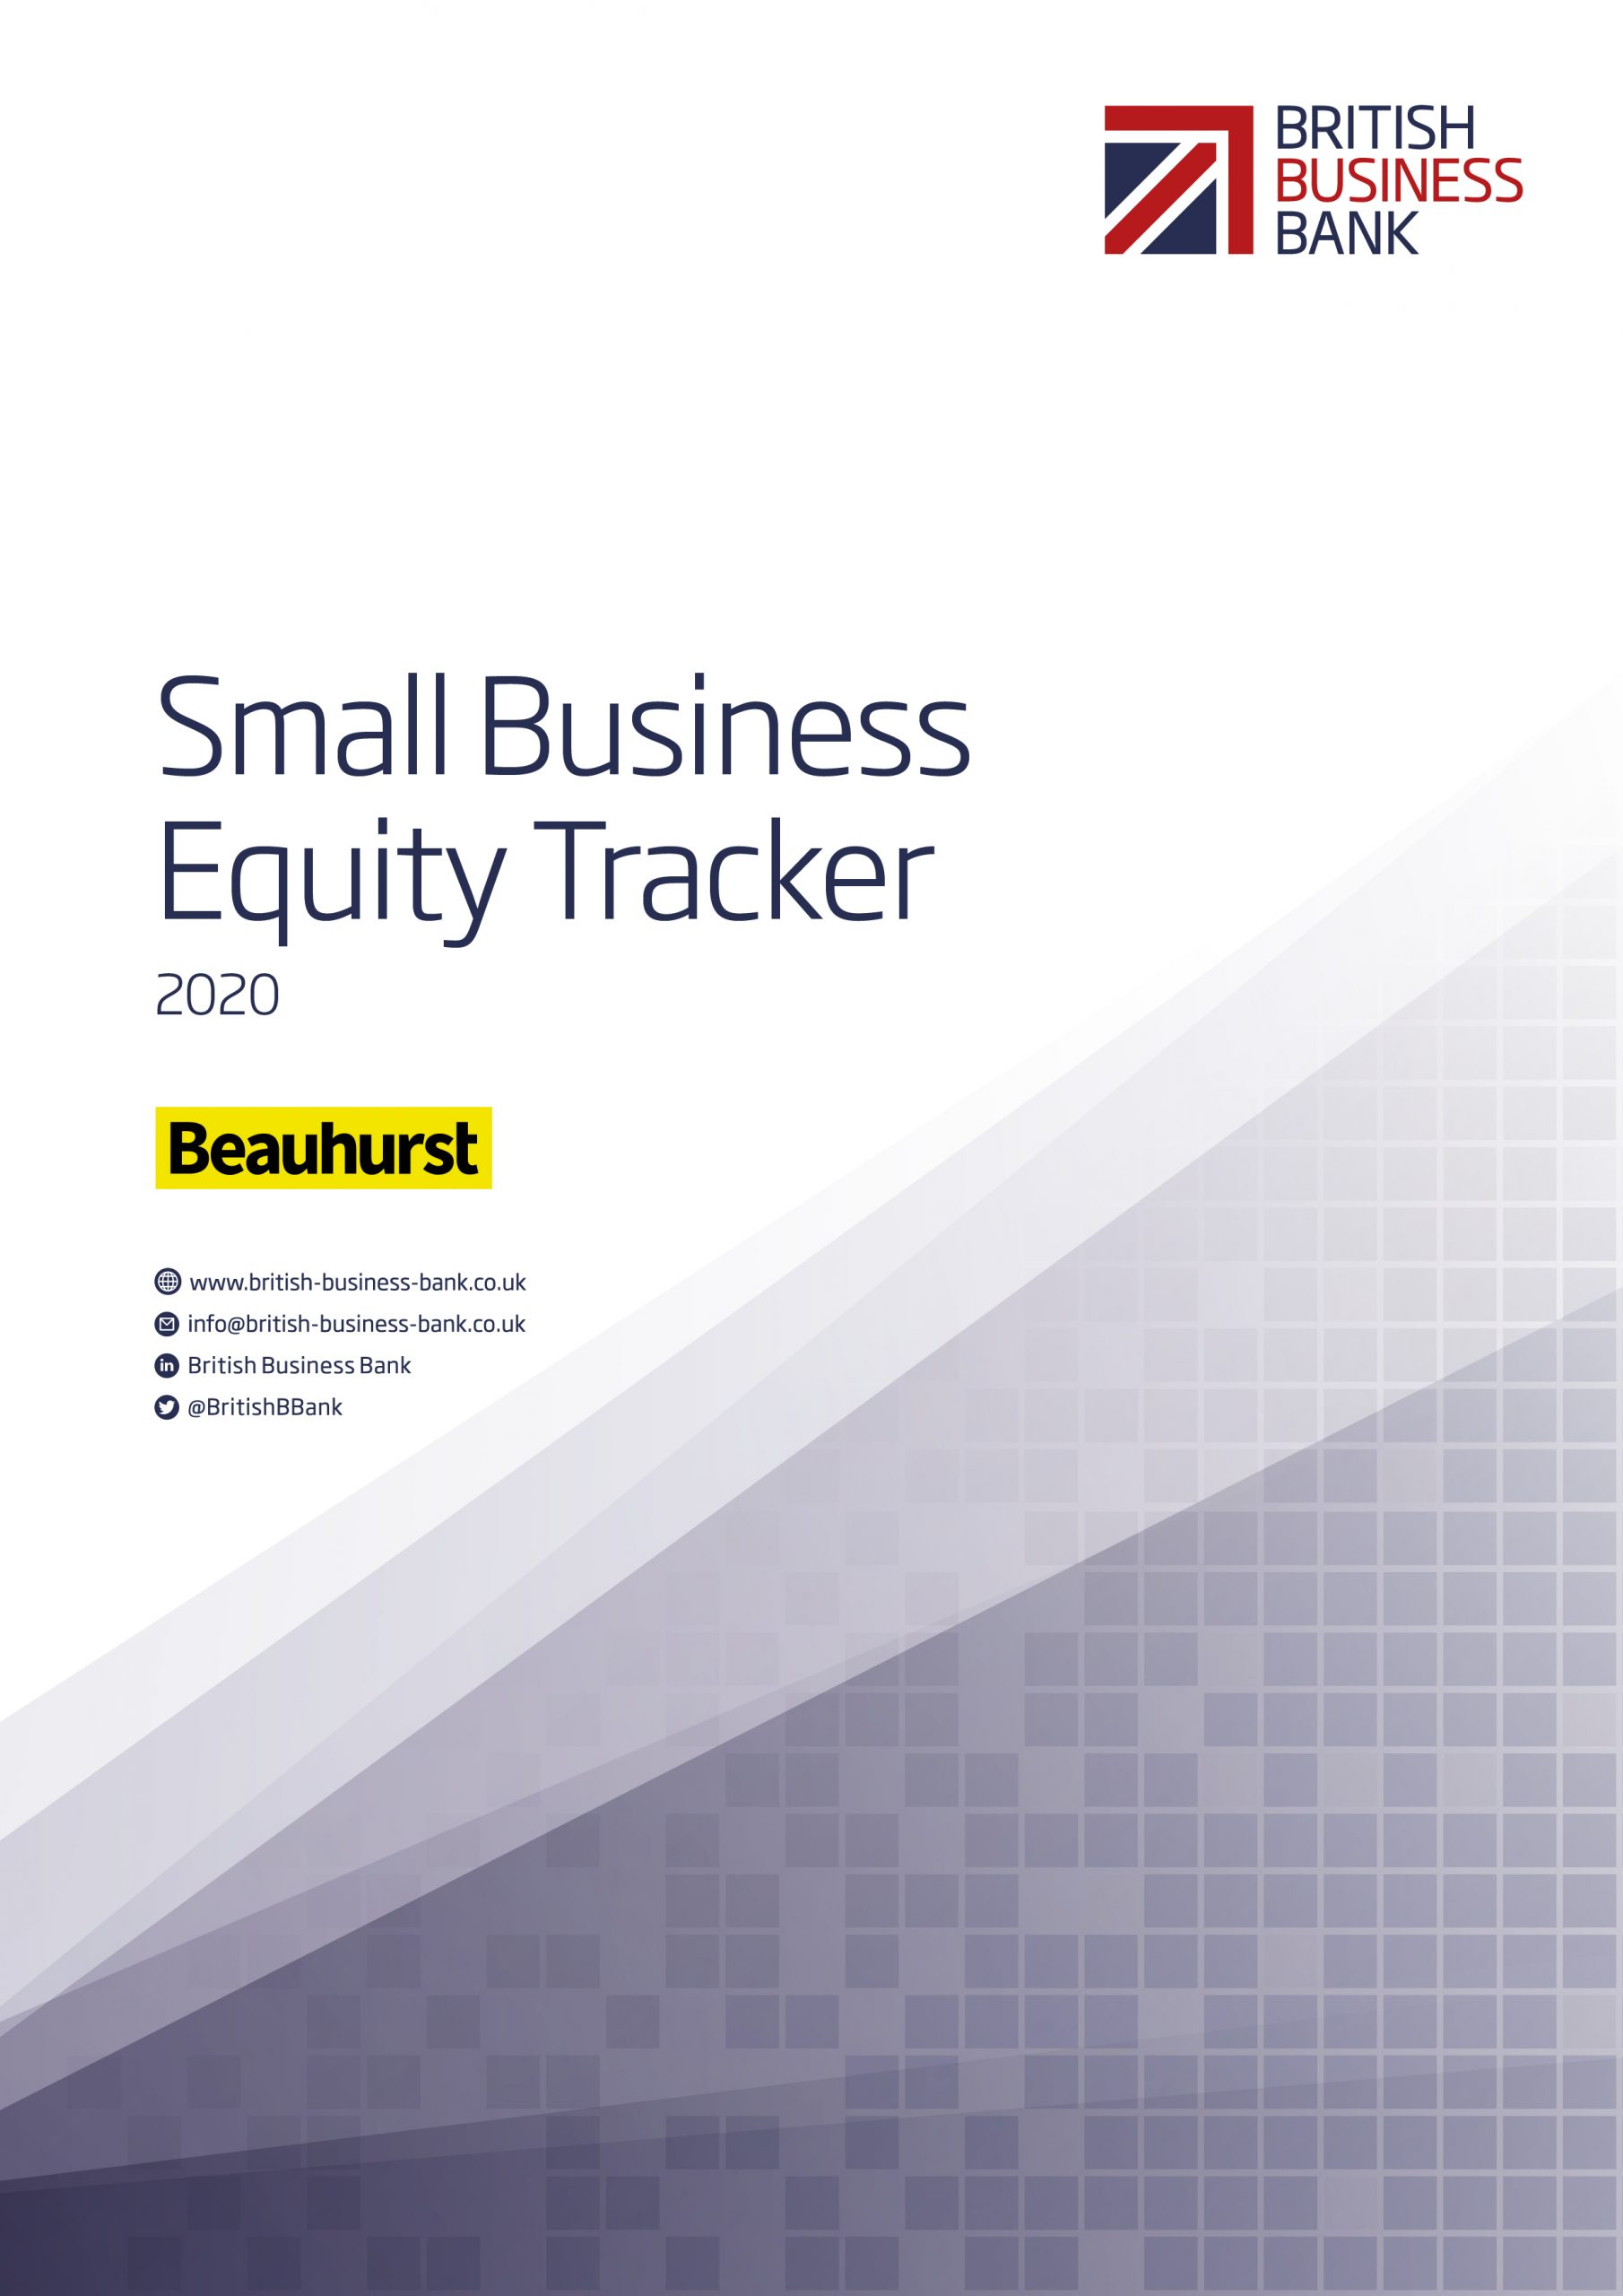 Small Business Equity Tracker 2020